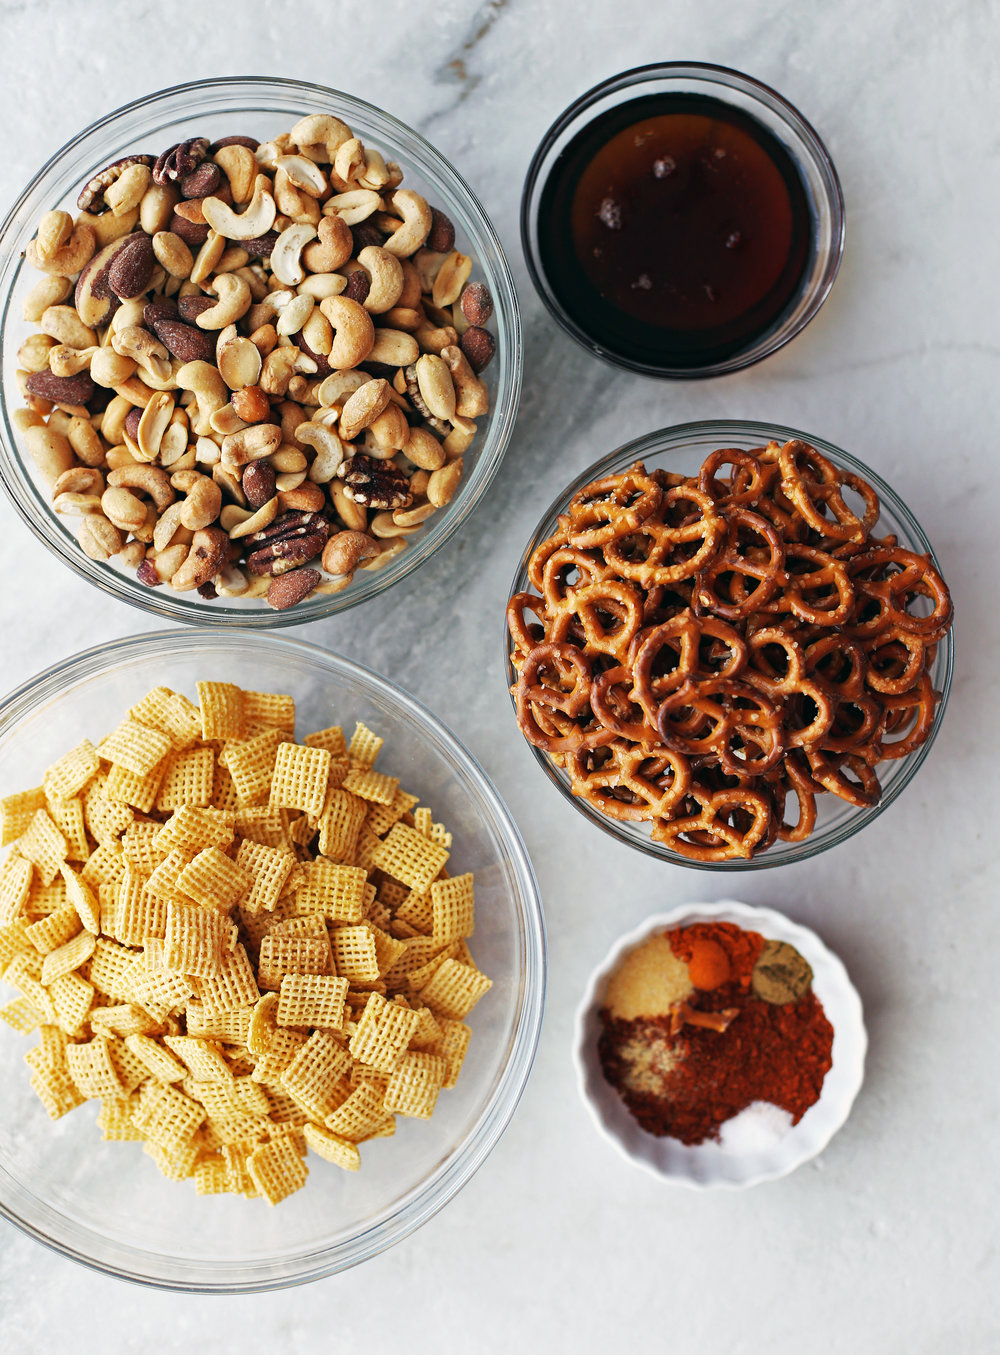 maple-chili-mixed-nuts-snack-mix-ingredients.jpg